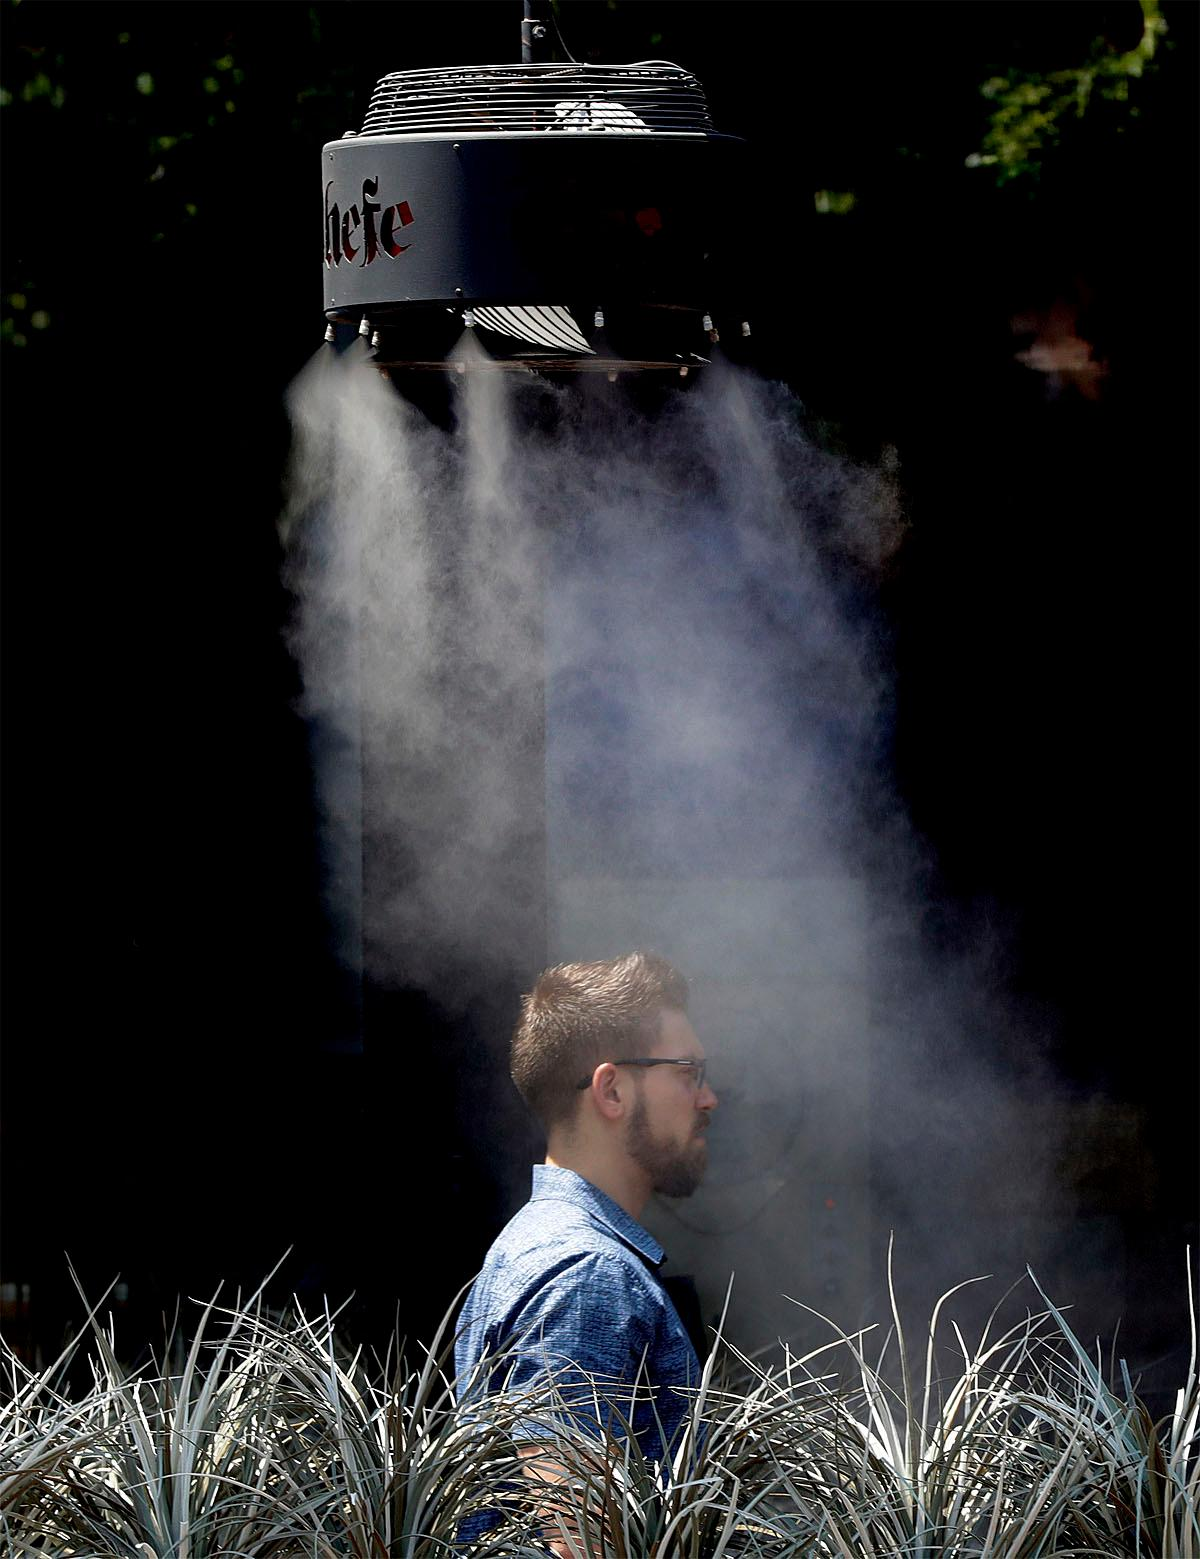 A man stands under a misting machine, Monday, June 19, 2017 in Tempe, Ariz. The forecast calls for a high of 118 on Monday and 120 on Tuesday in Phoenix. (AP Photo/Matt York)